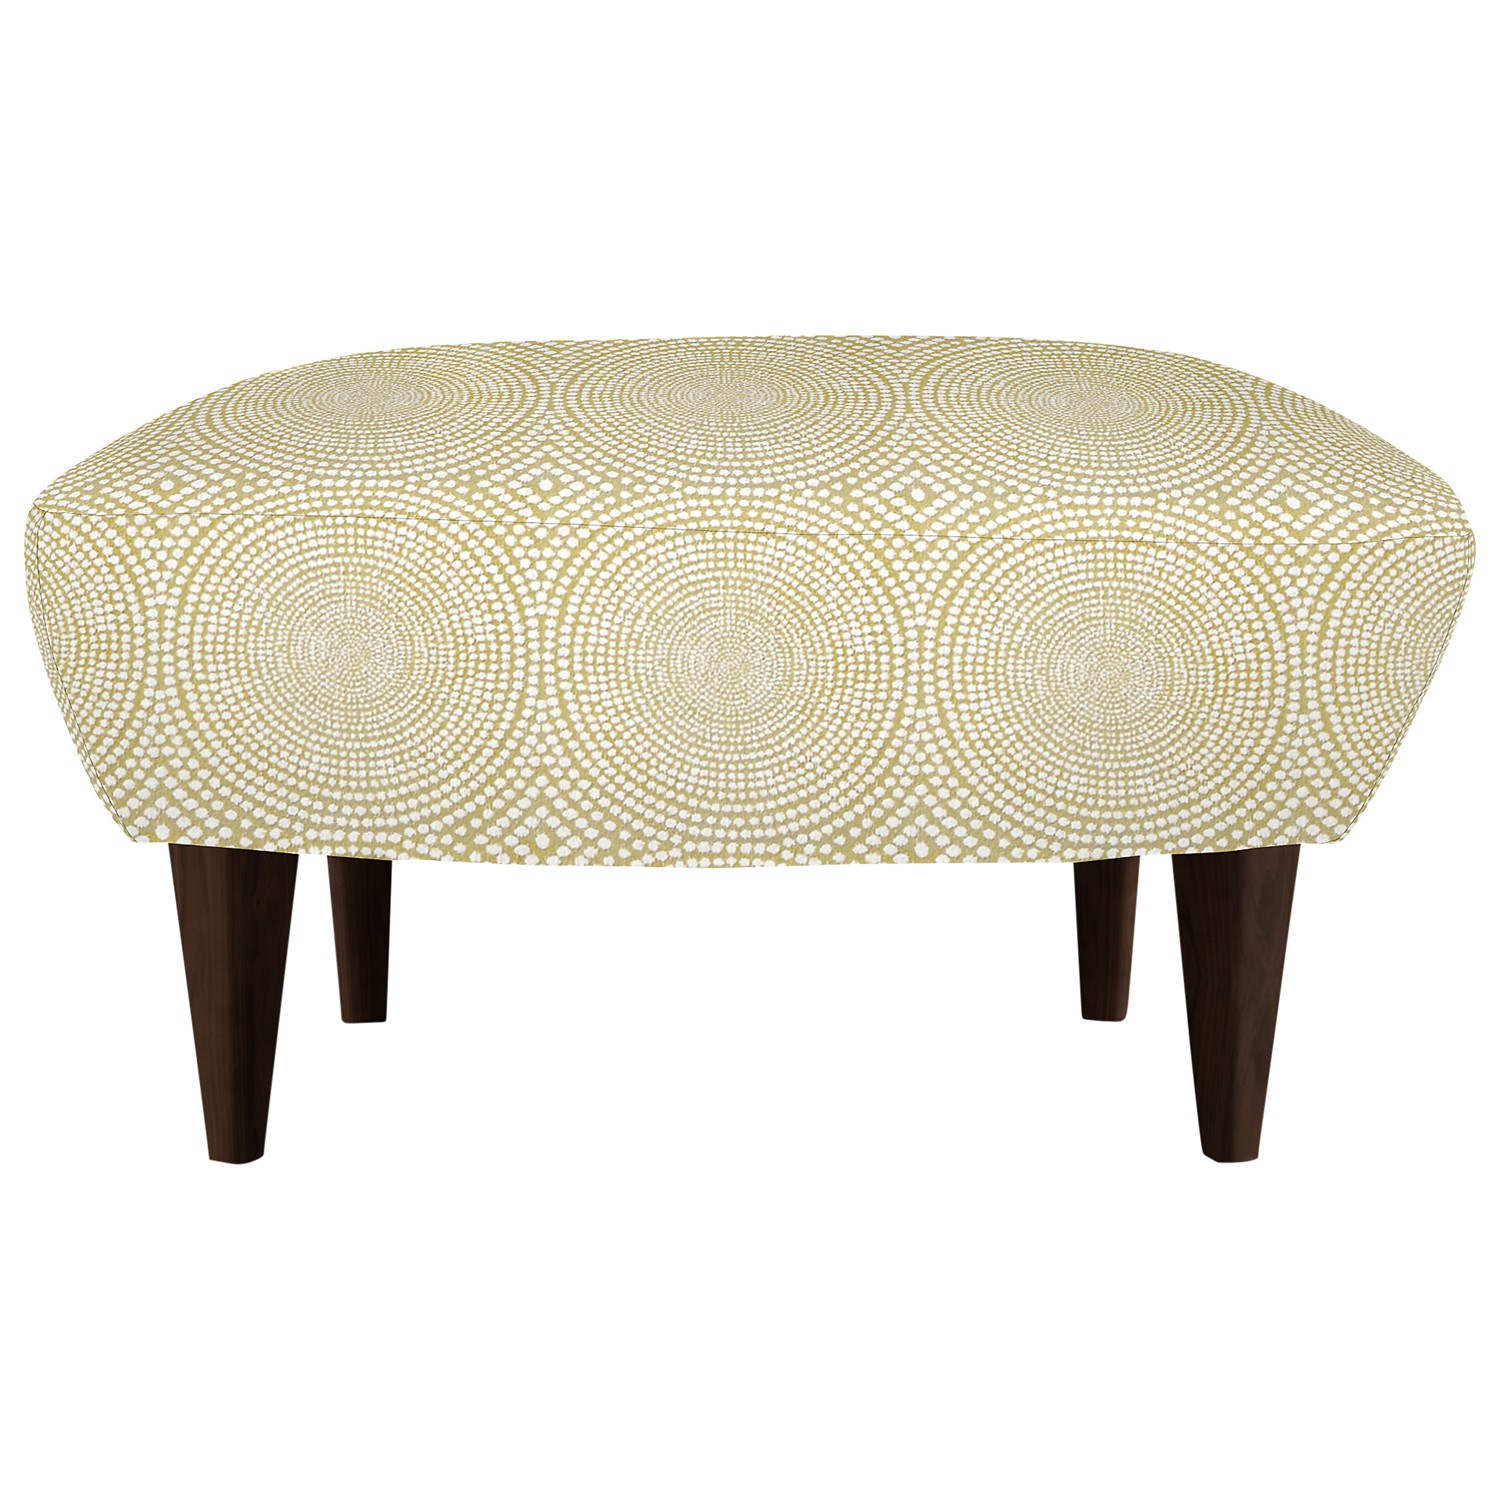 Content By Terence Conran Matador Footstool Kateri Lime